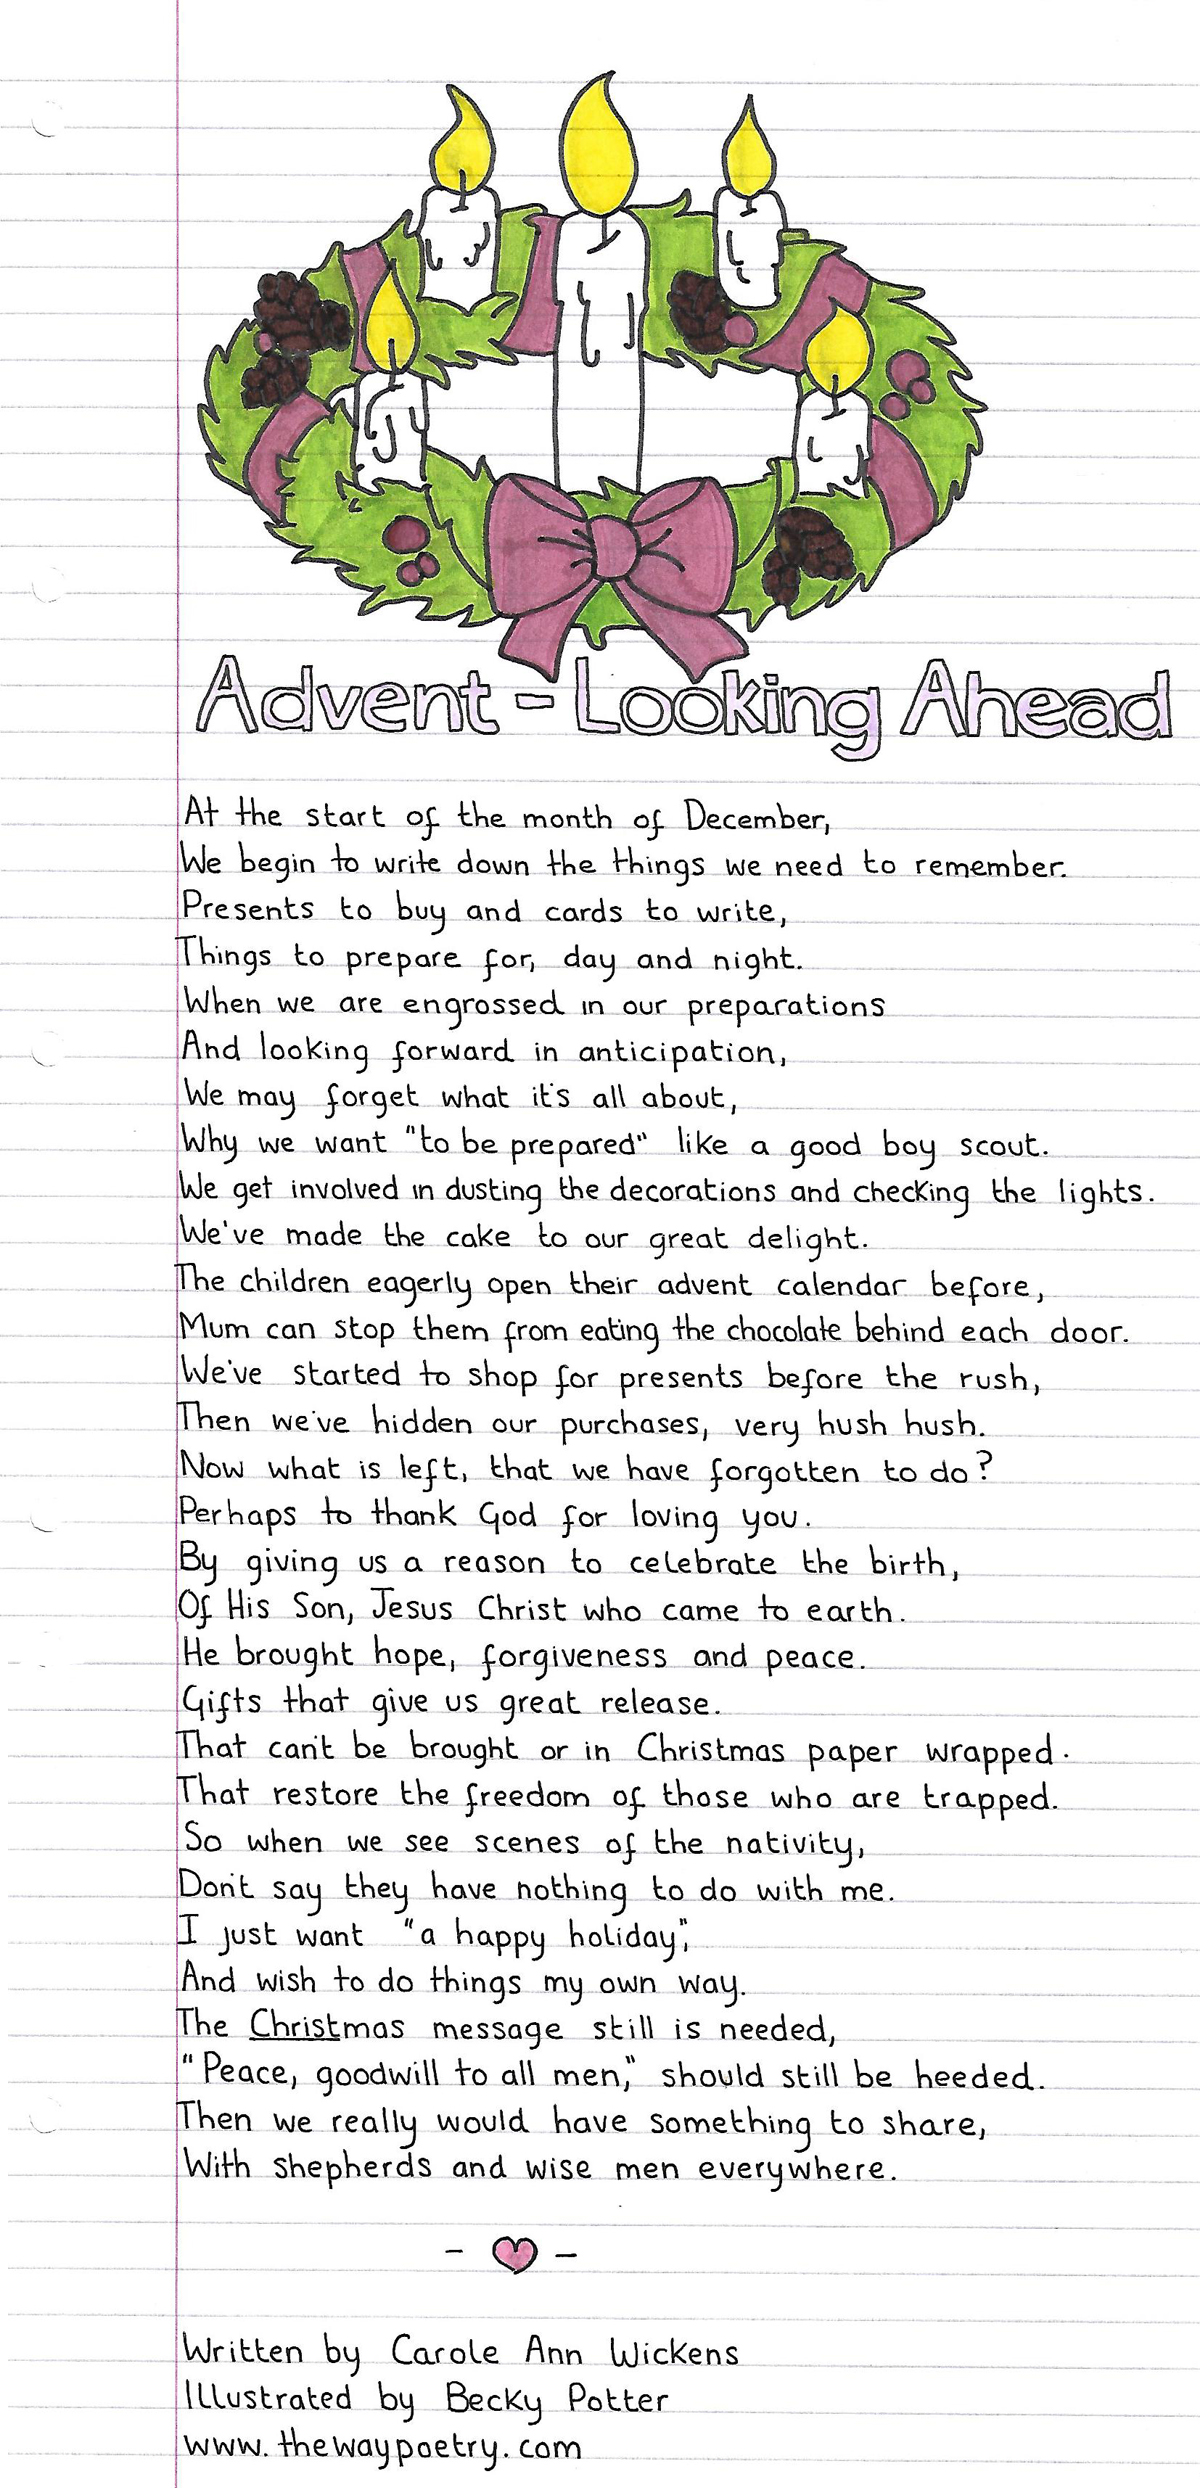 Advent – Looking Ahead by Carole Ann Wickens